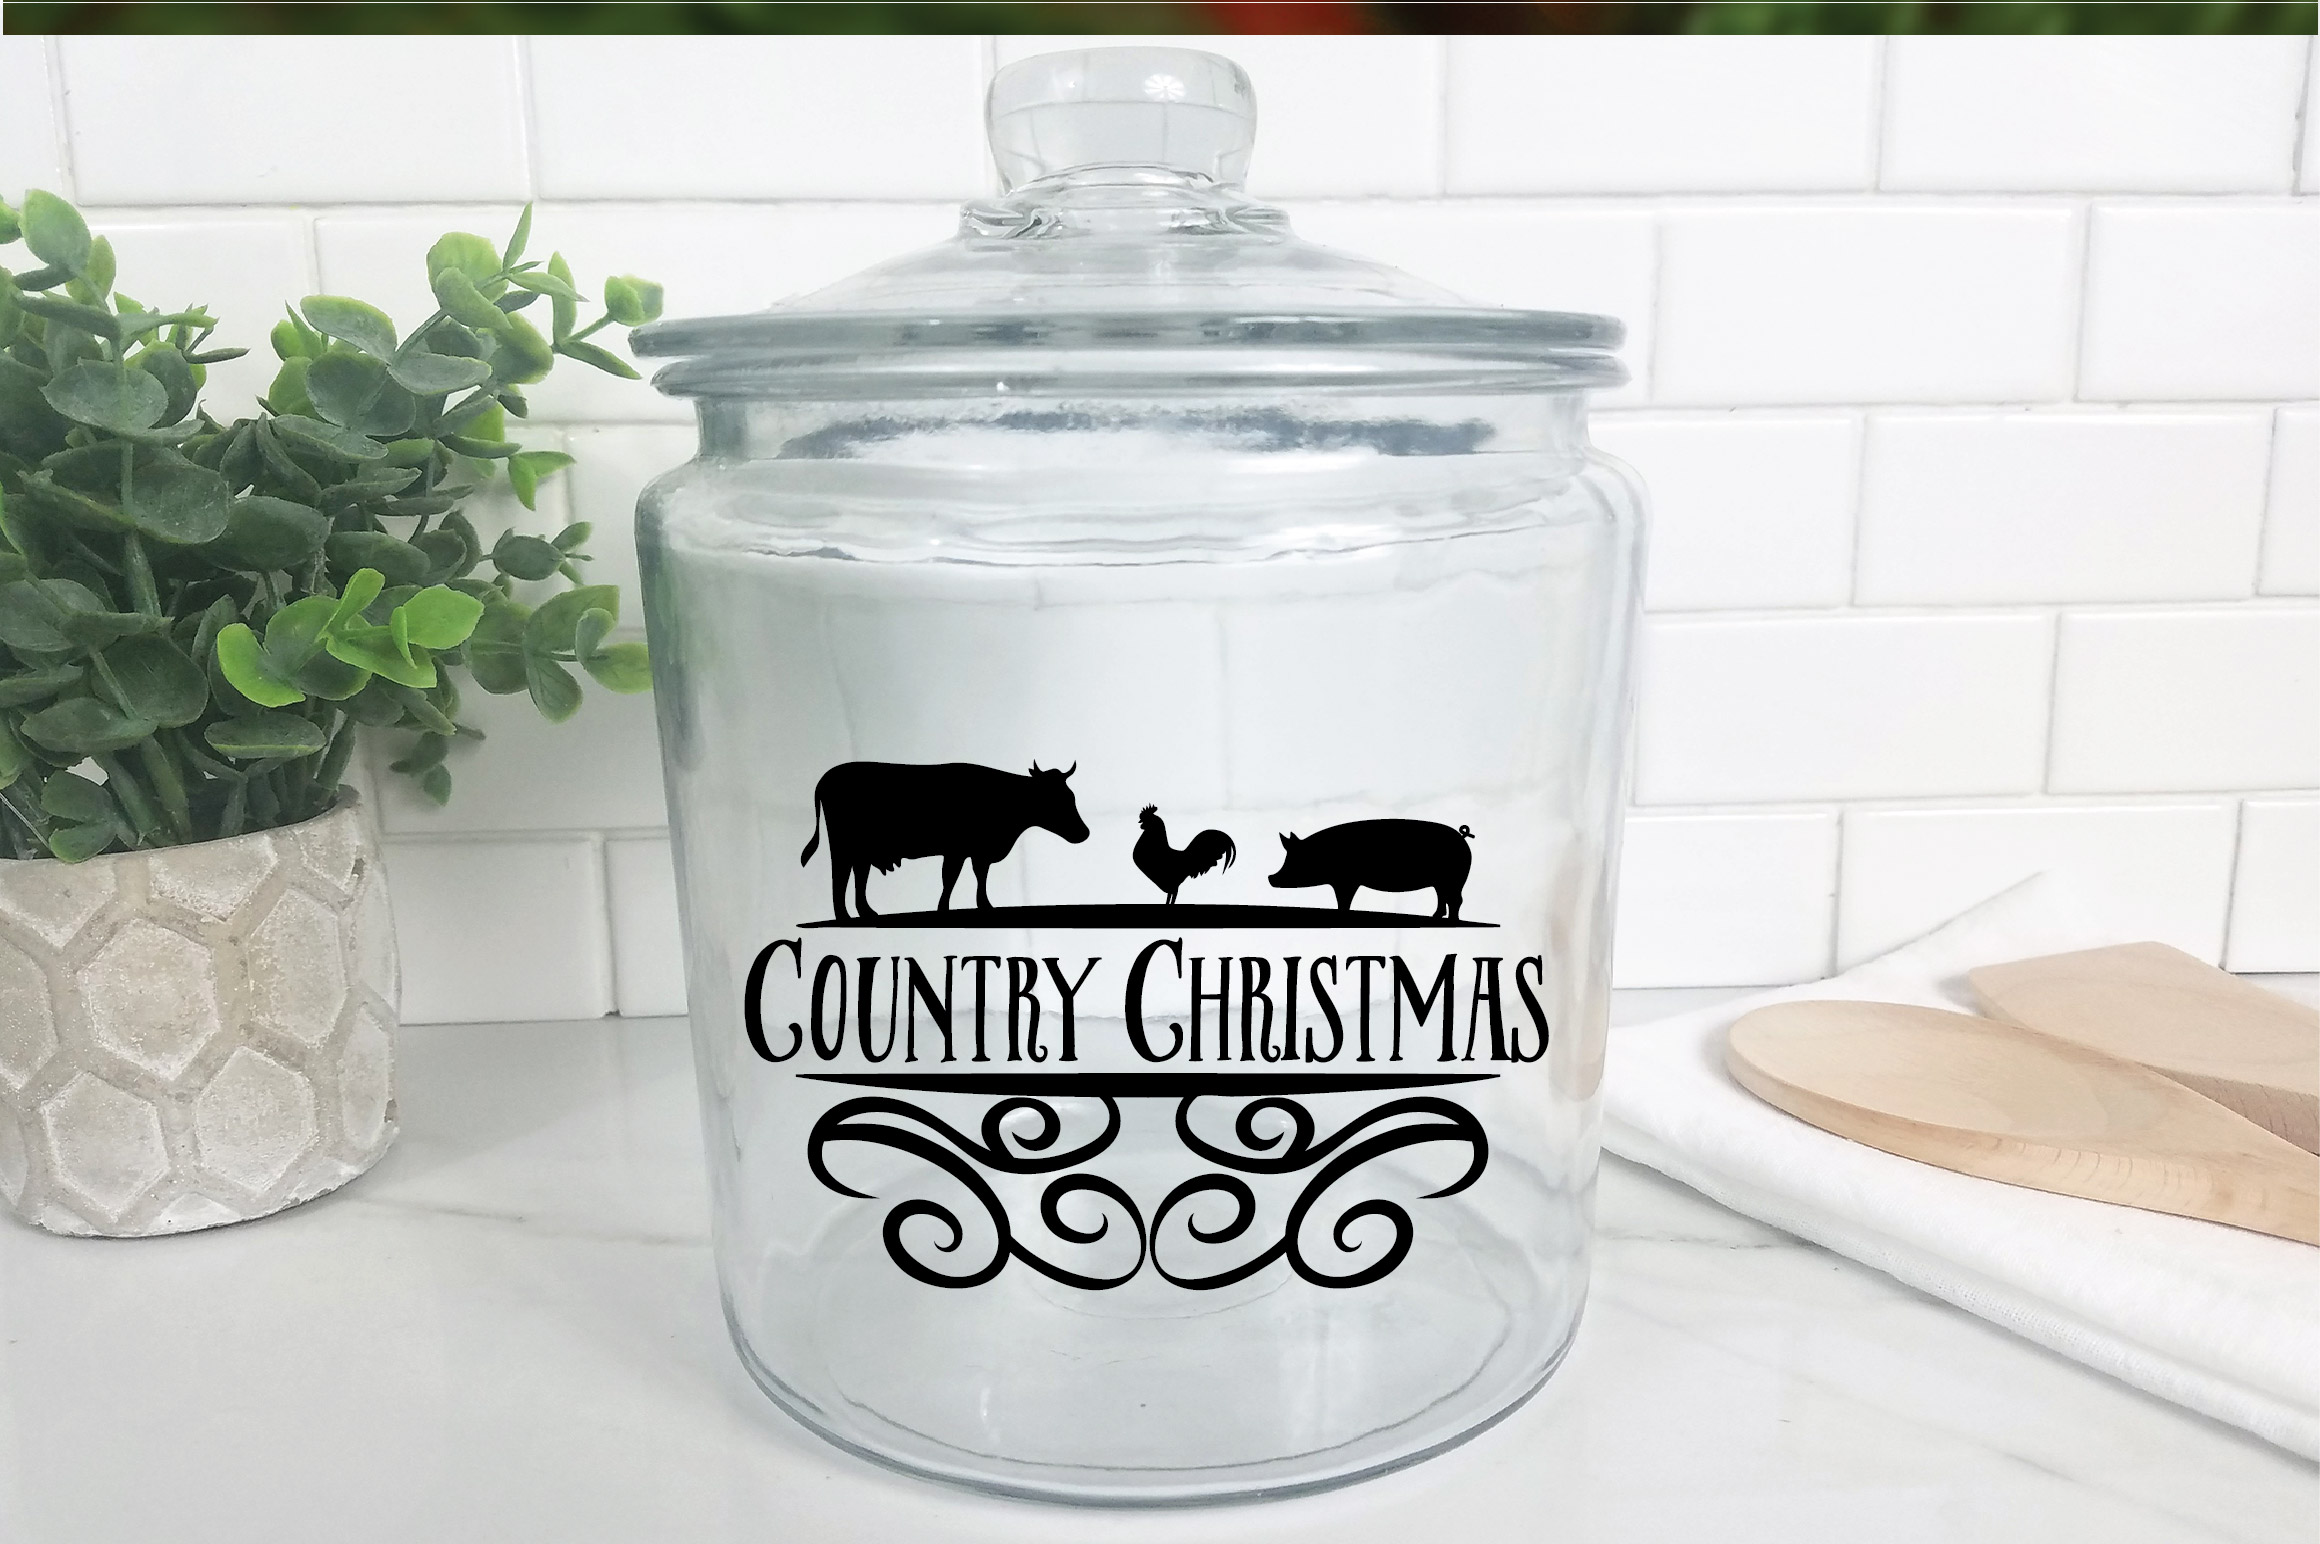 Christmas SVG Cut File - Country Christmas SVG DXF PNG EPS example image 9